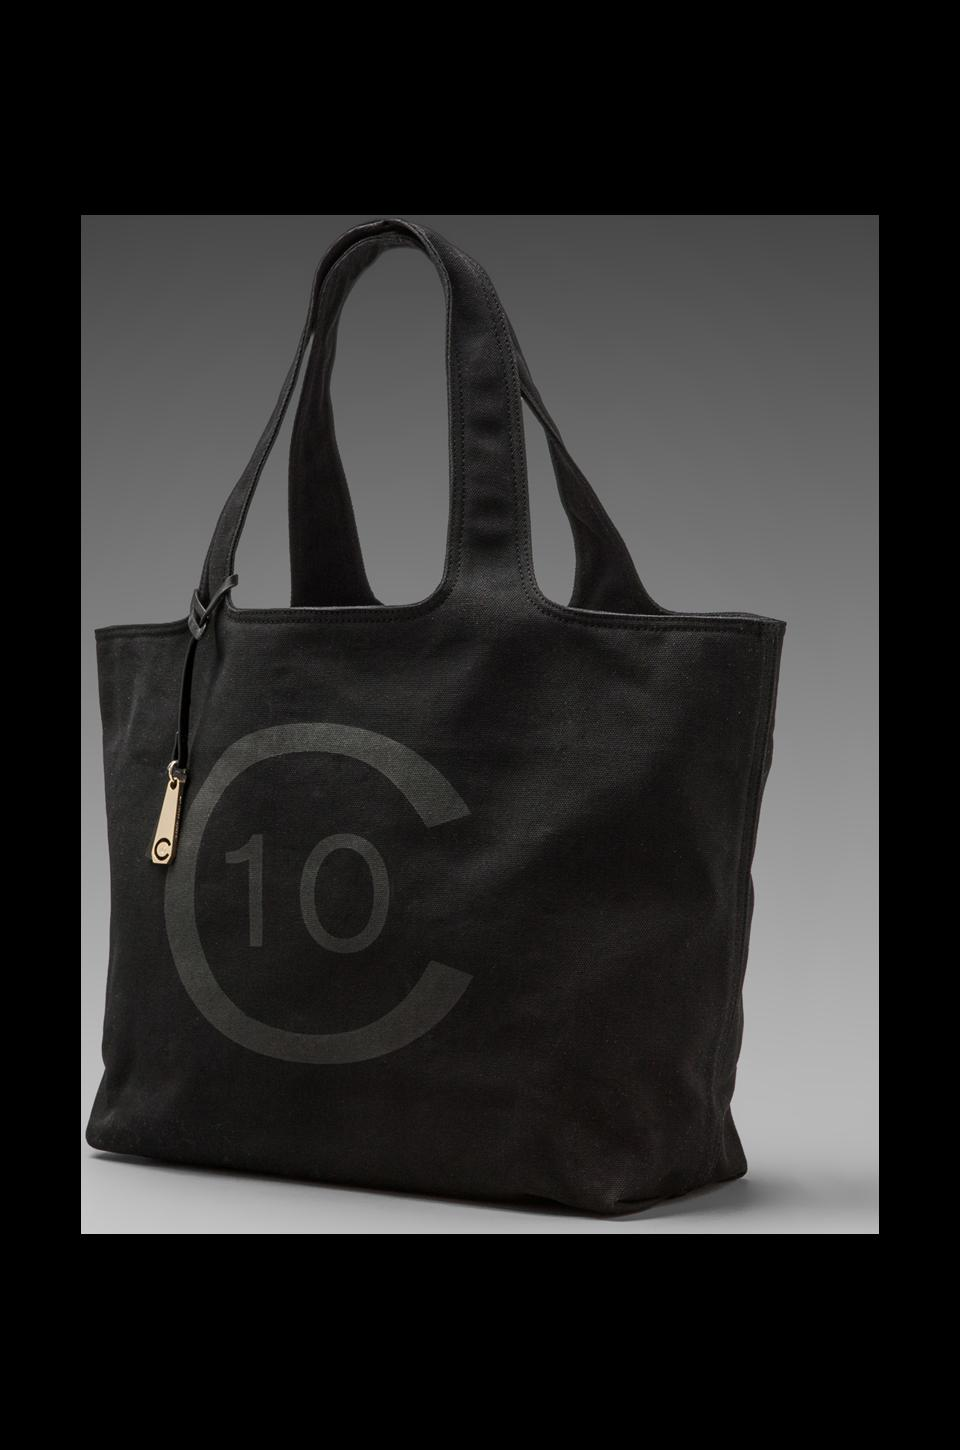 DEREK LAM 10 CROSBY 10C Canvas Tote in Black